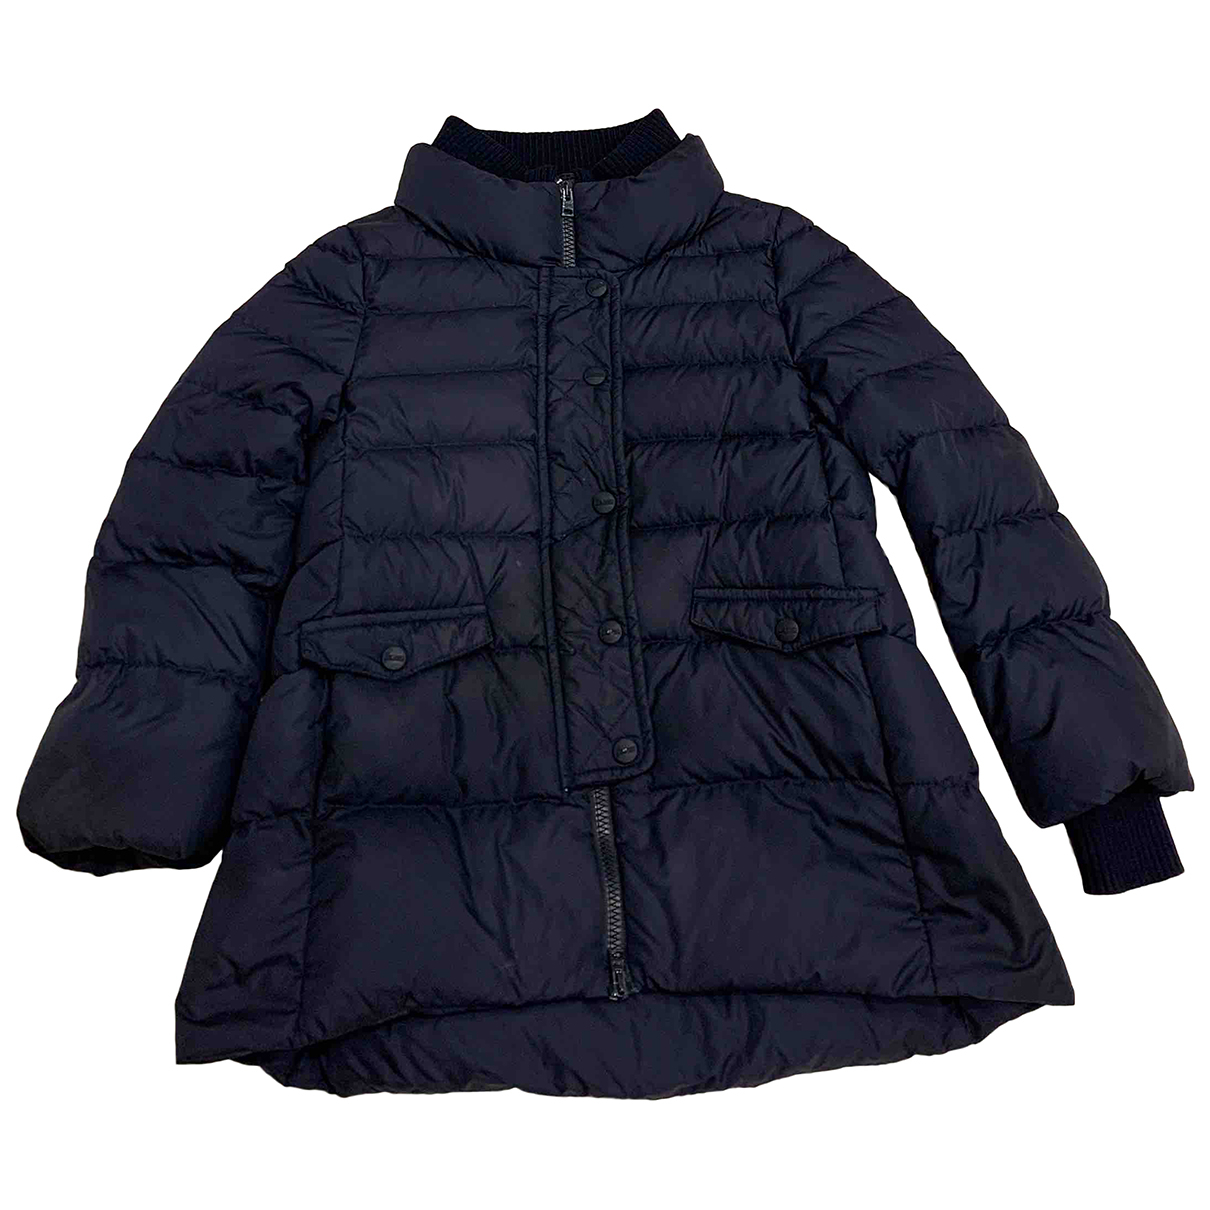 Herno N Blue jacket & coat for Kids 8 years - up to 128cm FR